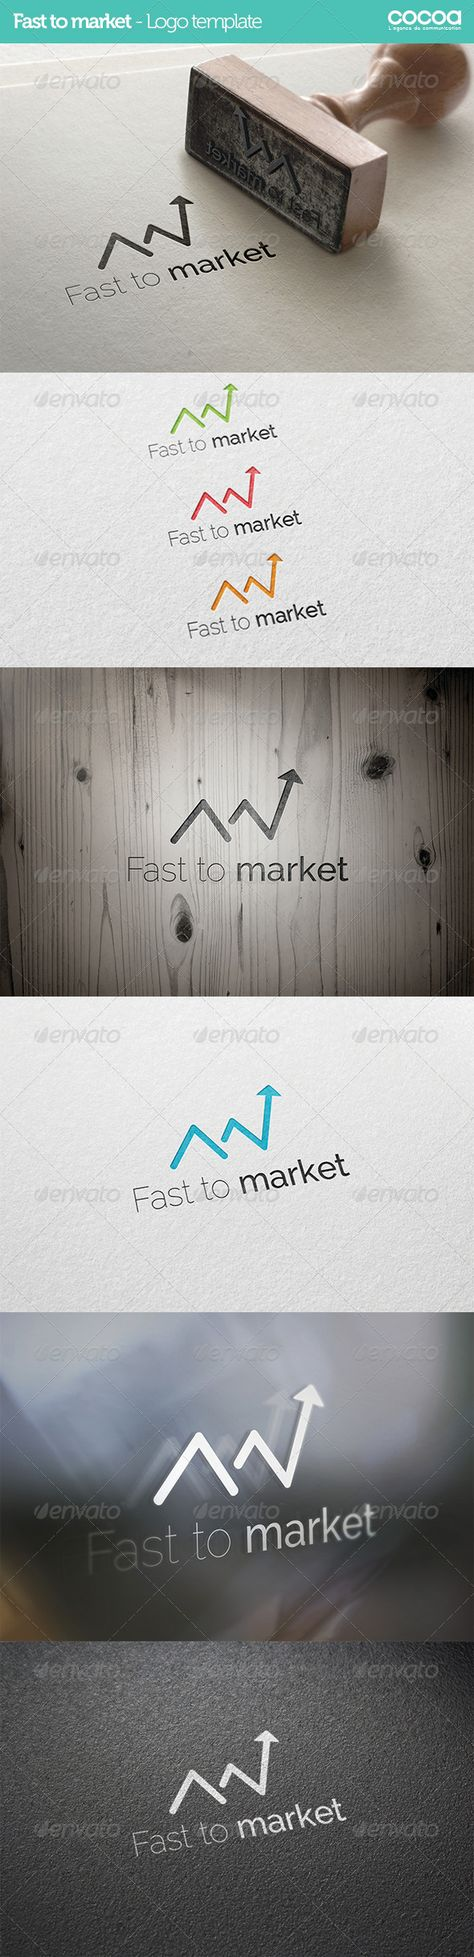 Fast To Market - Logo Template